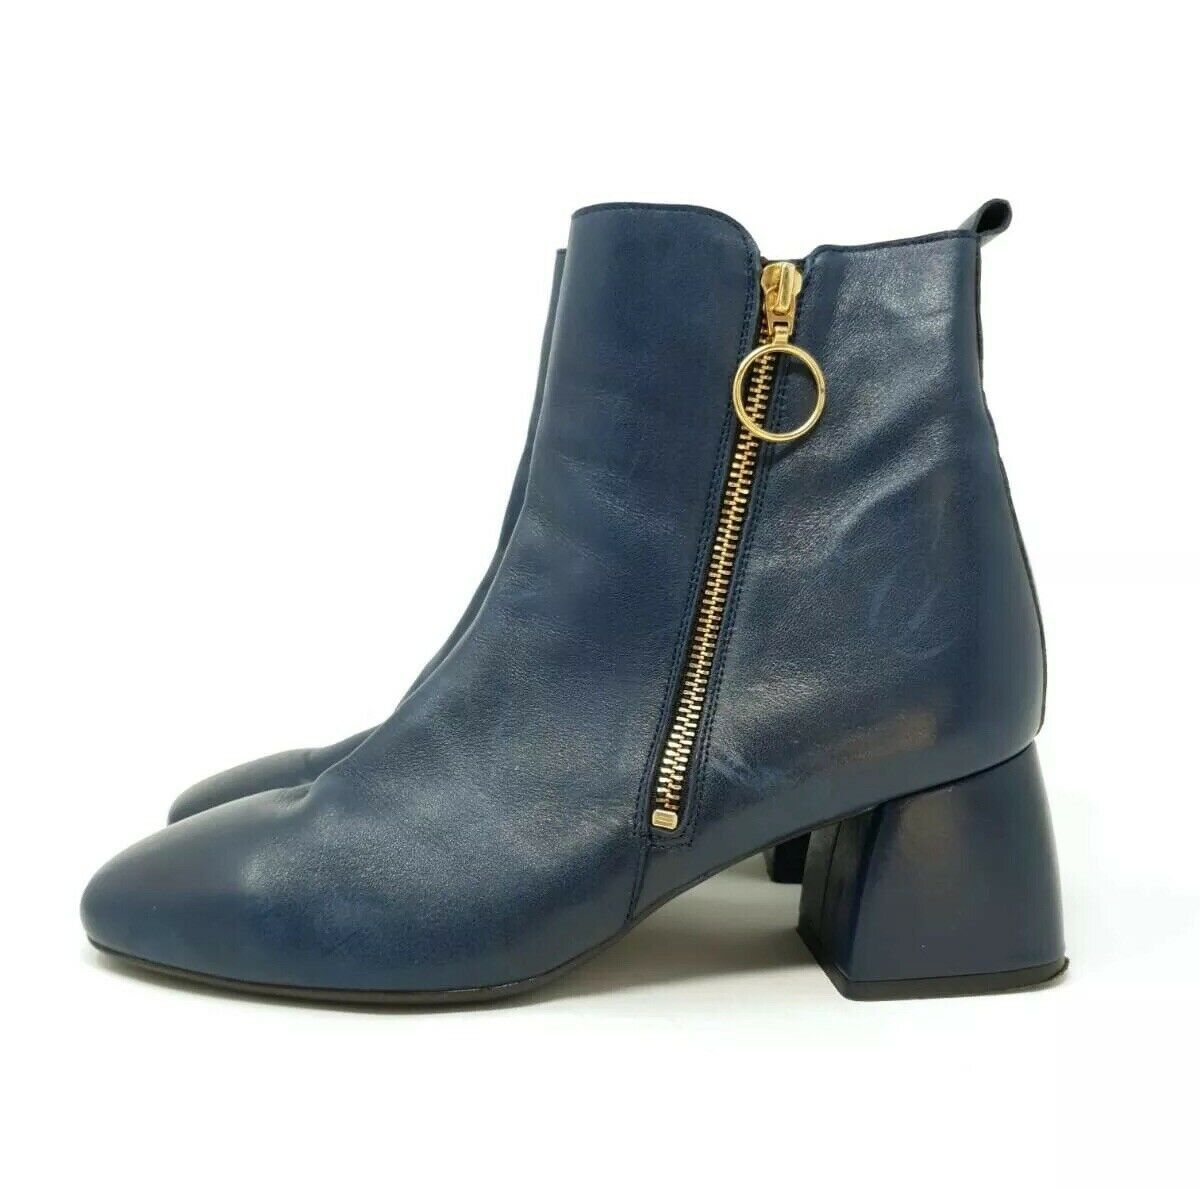 Leather Ankle Boots UK 6.5 EU